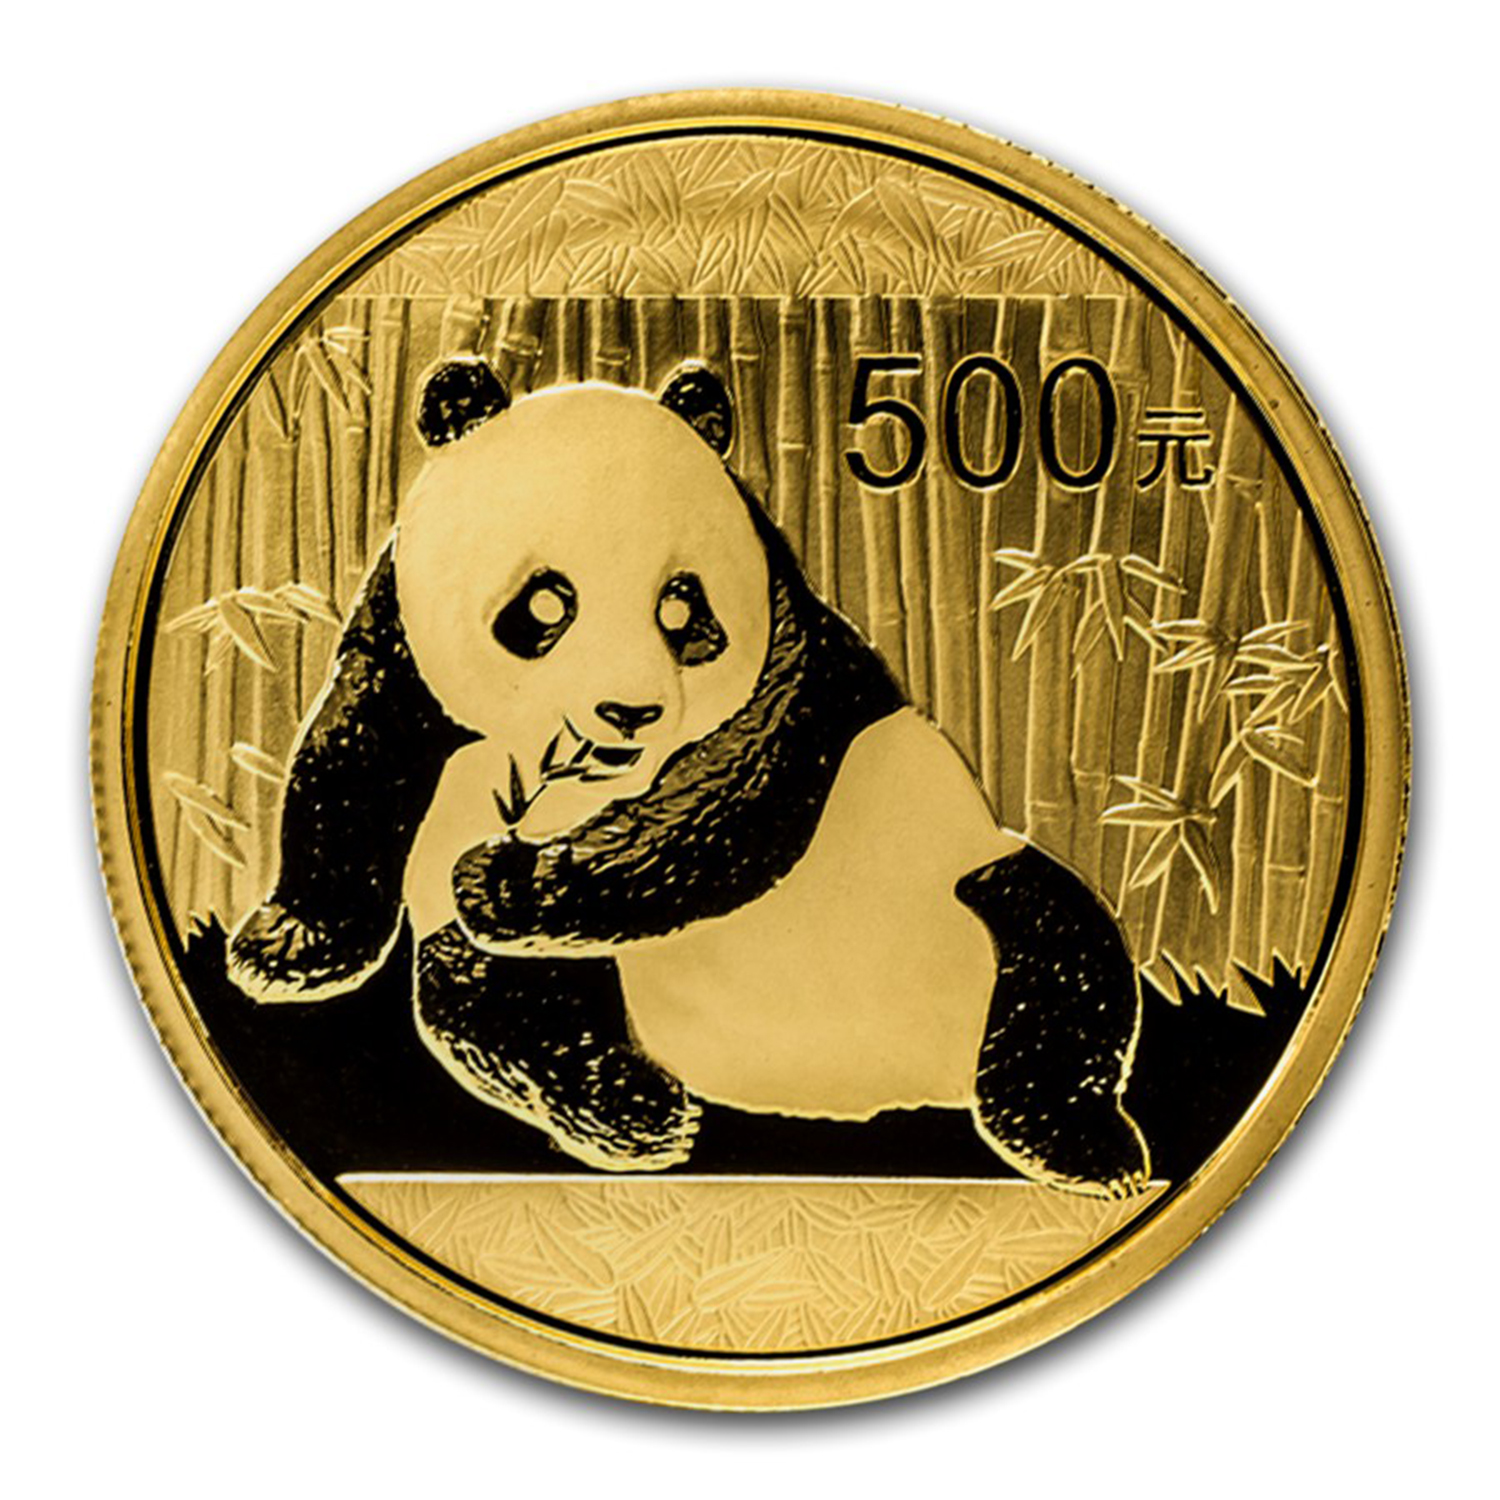 2015 China 1 Oz Gold Panda Coin For Sale Buy Chinese